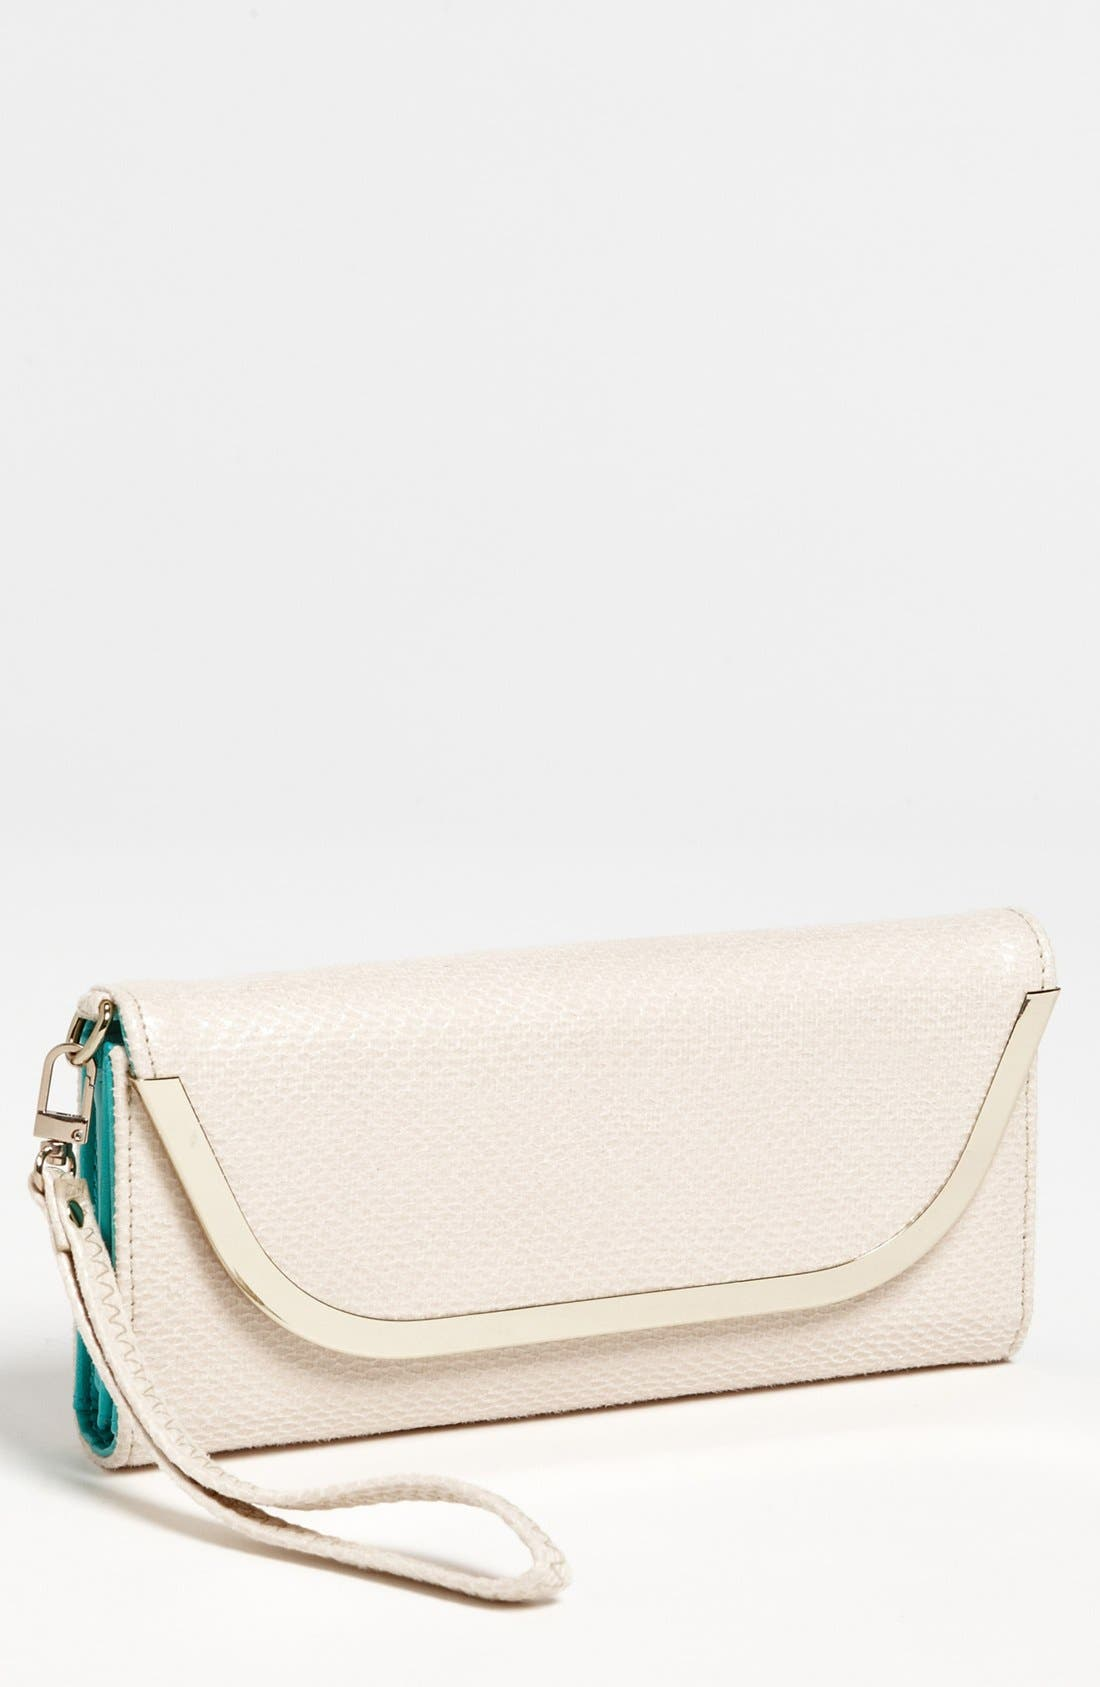 Alternate Image 1 Selected - Izzy & Ali 'Jet Setter' Faux Leather Clutch Wallet